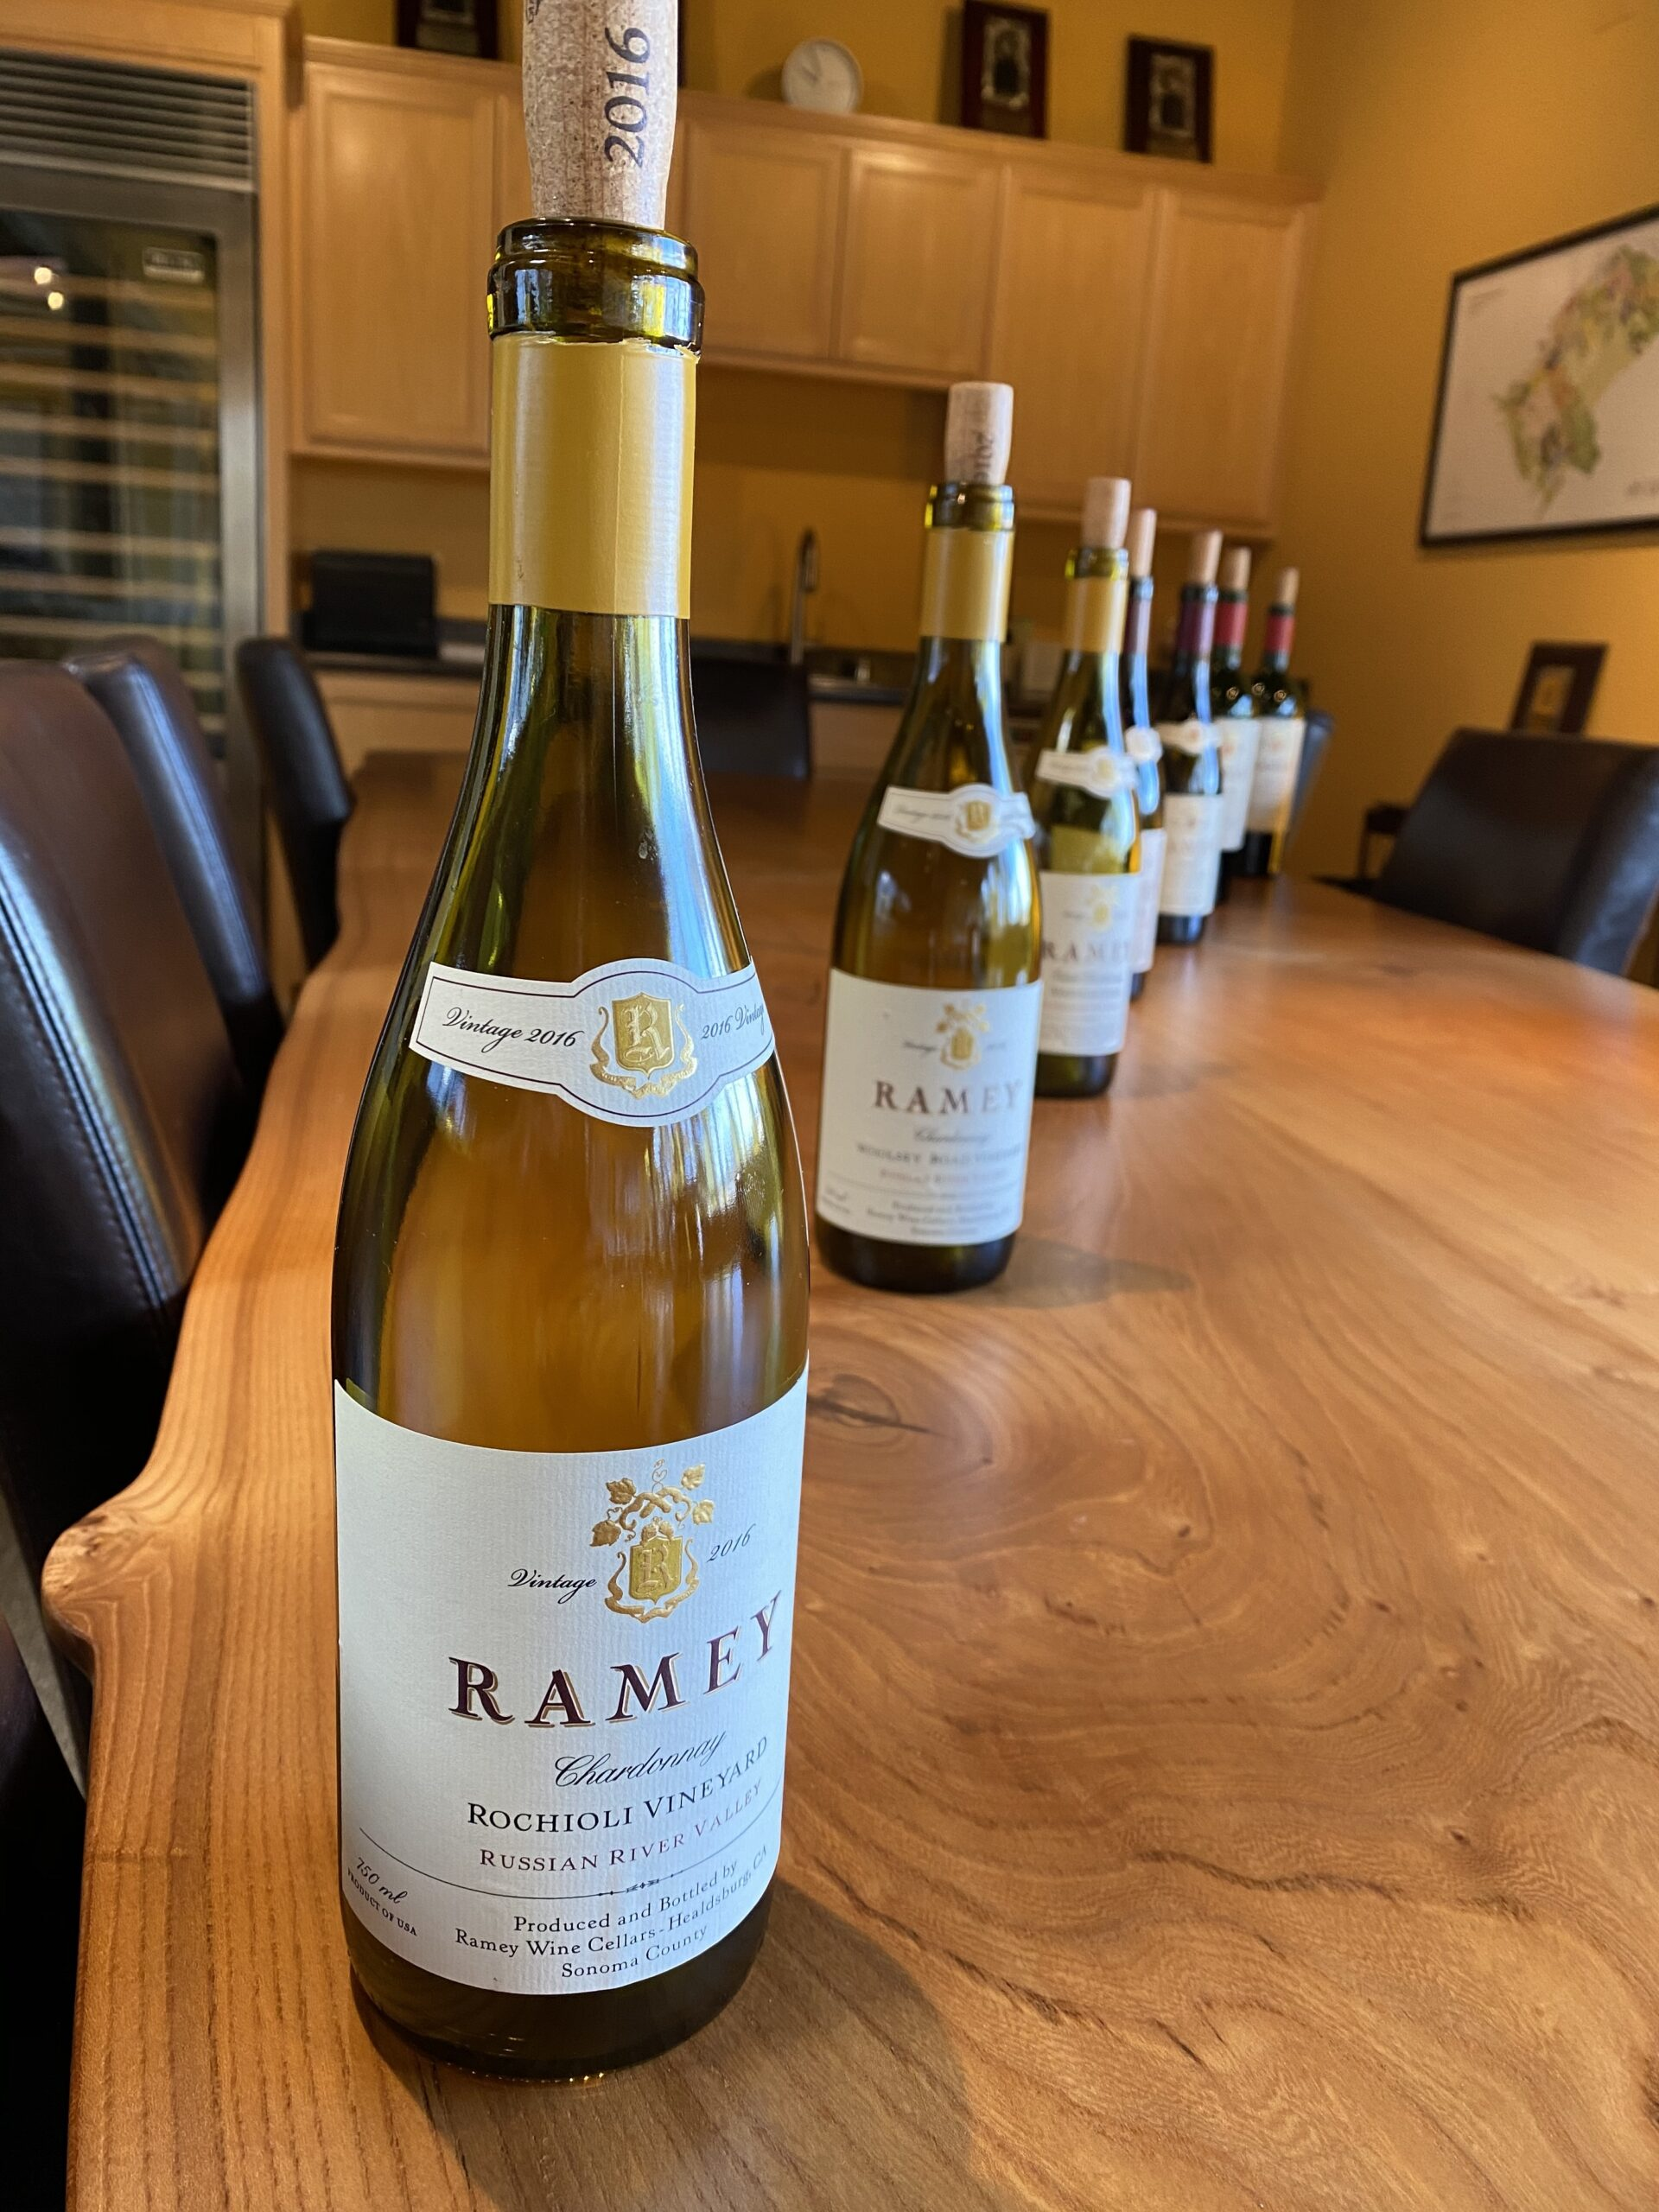 30 Wineries in 30 Days – Day 28:  Ramey